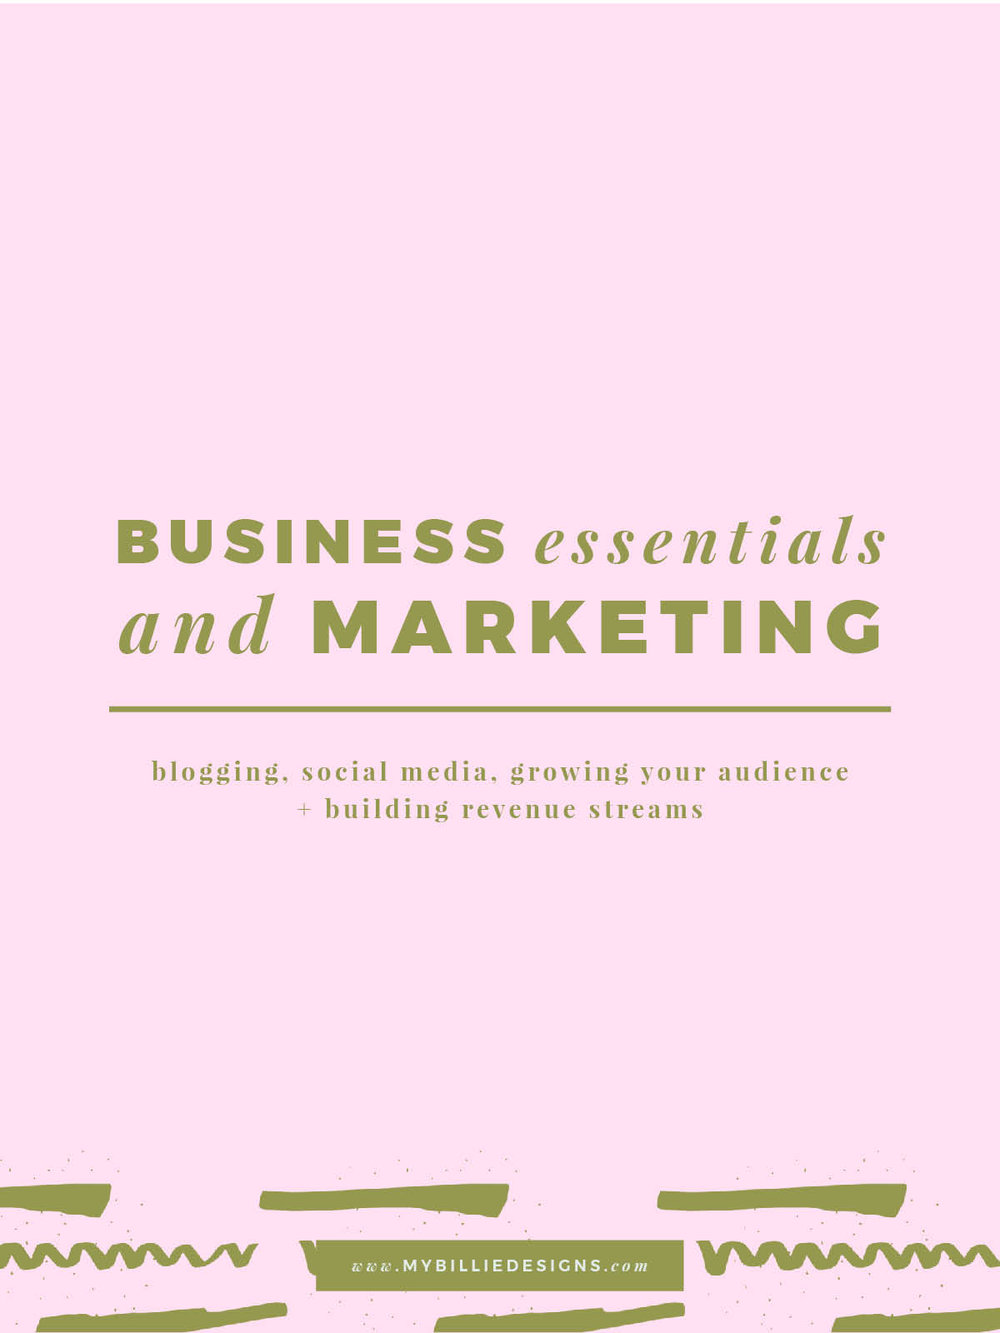 Online business essentials: blogging, social media, growing your audience and building revenue streams!